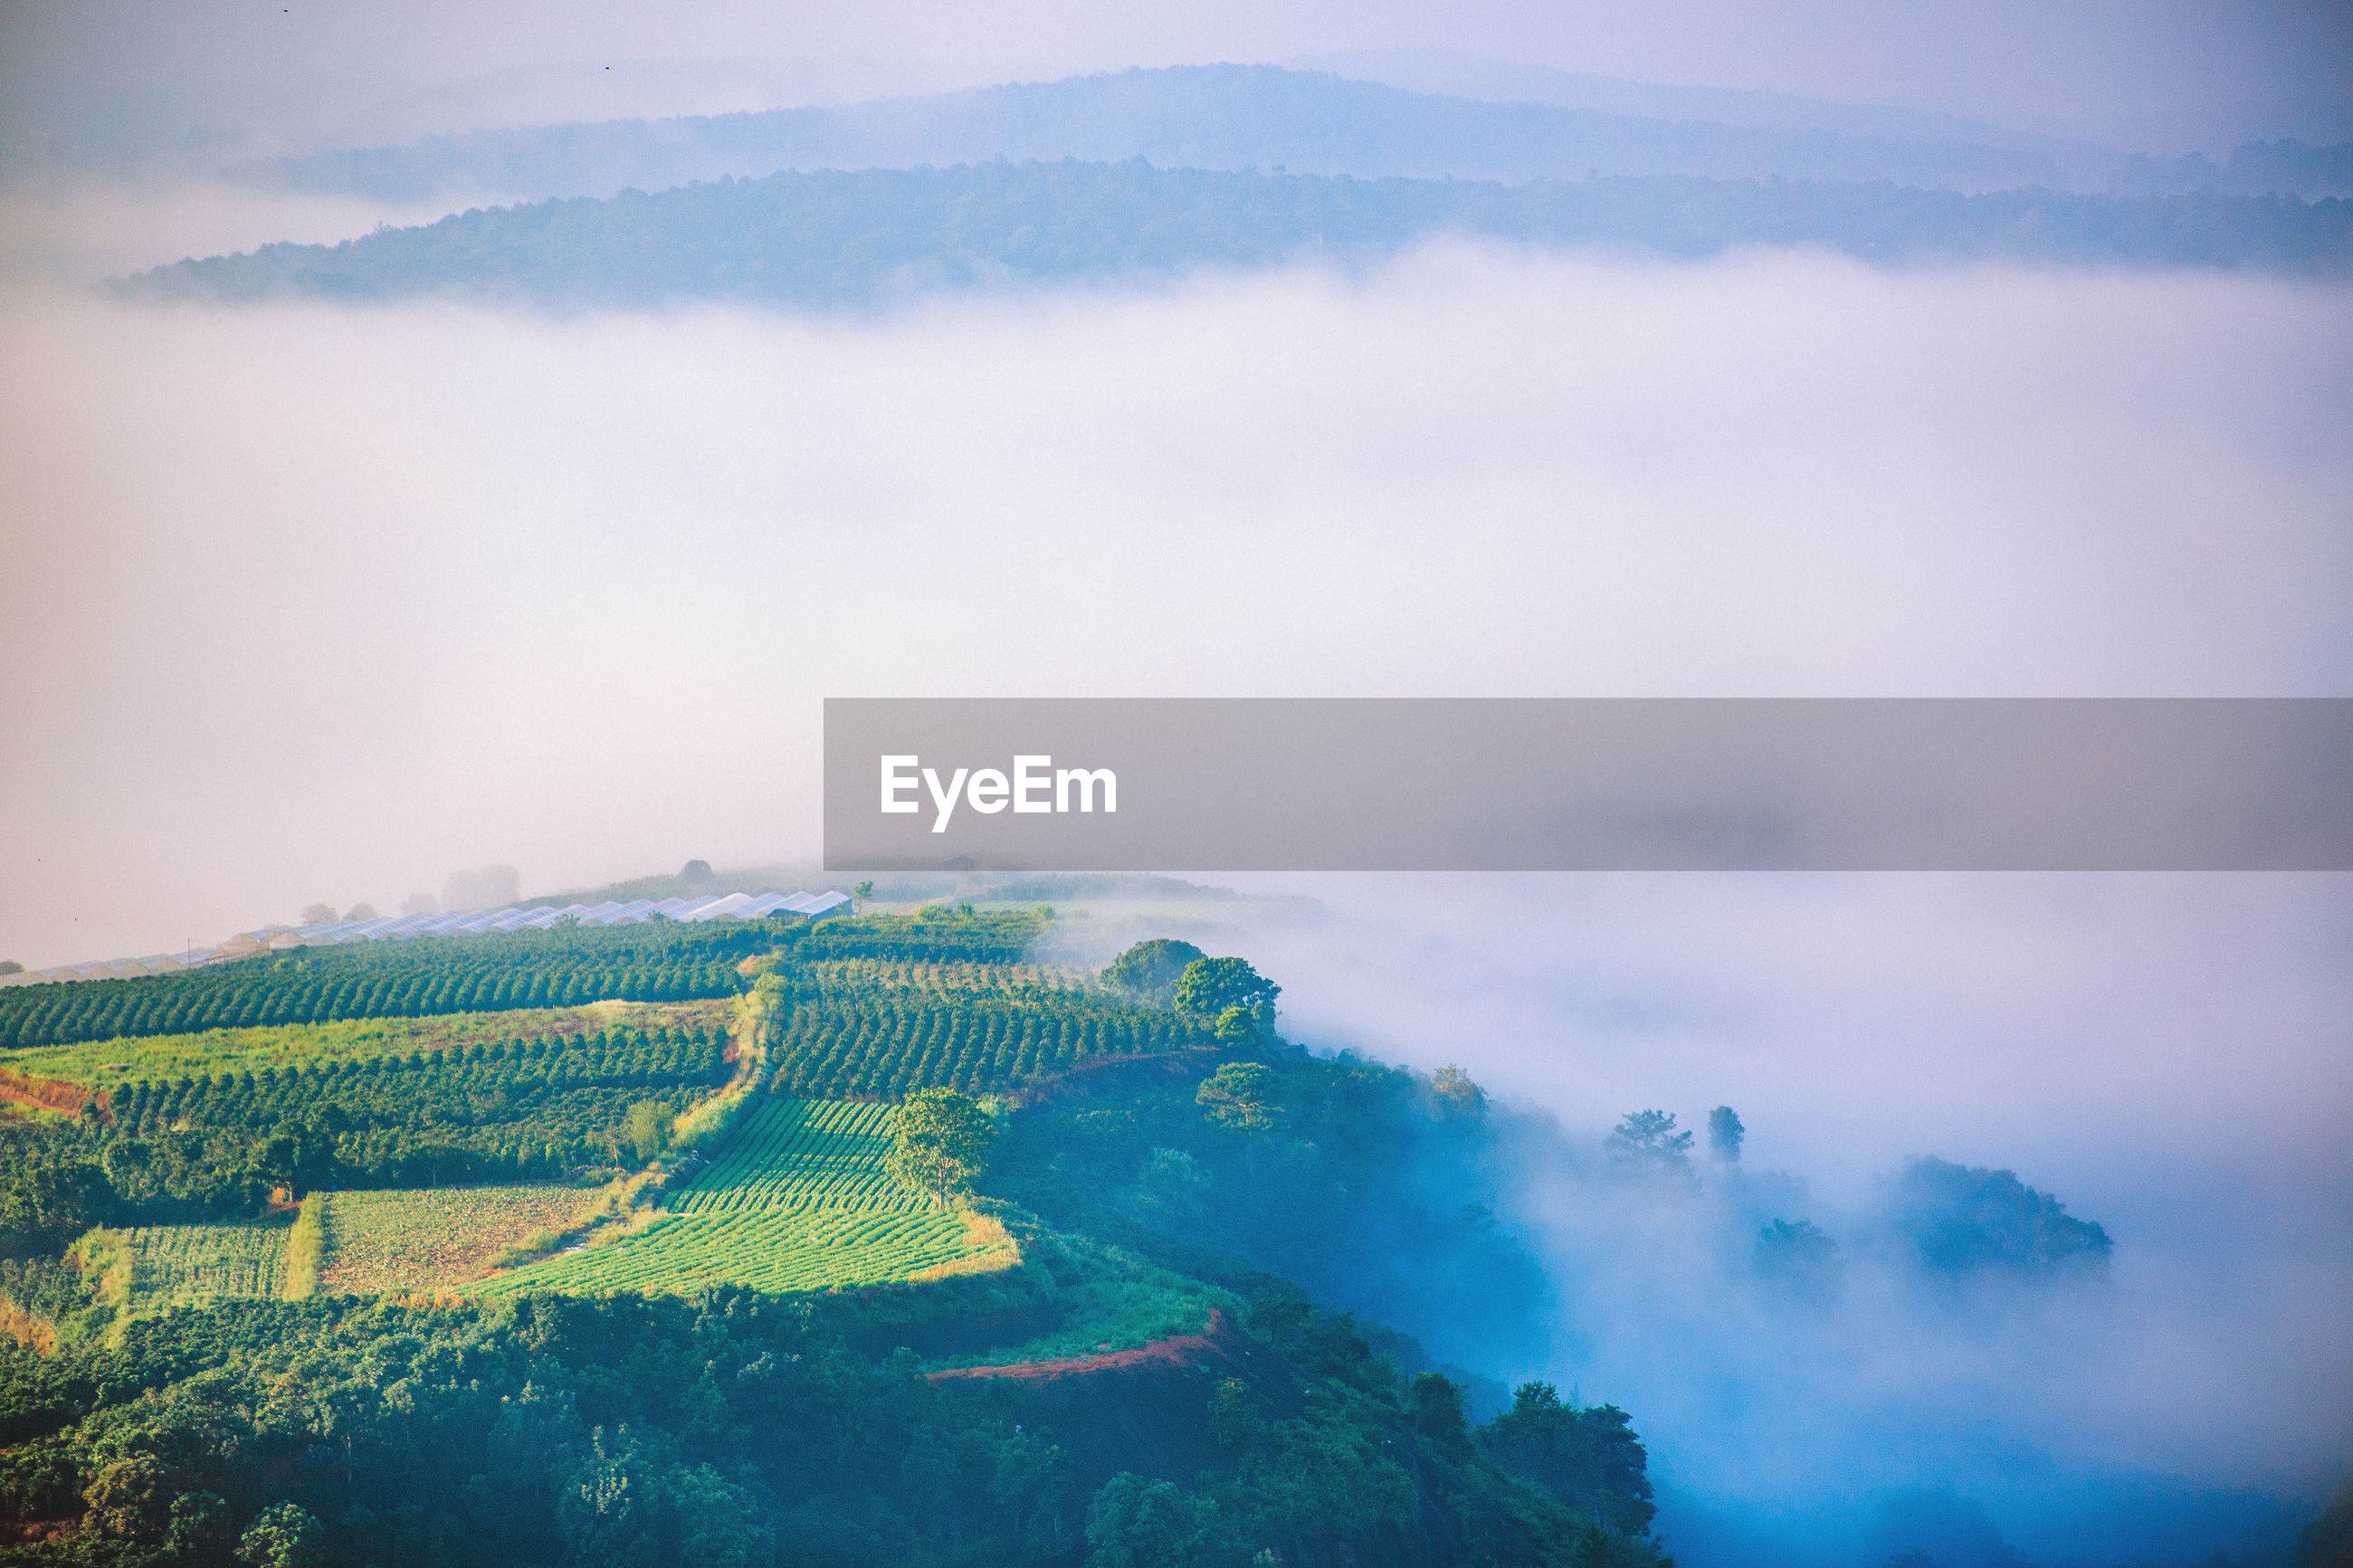 SCENIC VIEW OF FOG OVER LAND